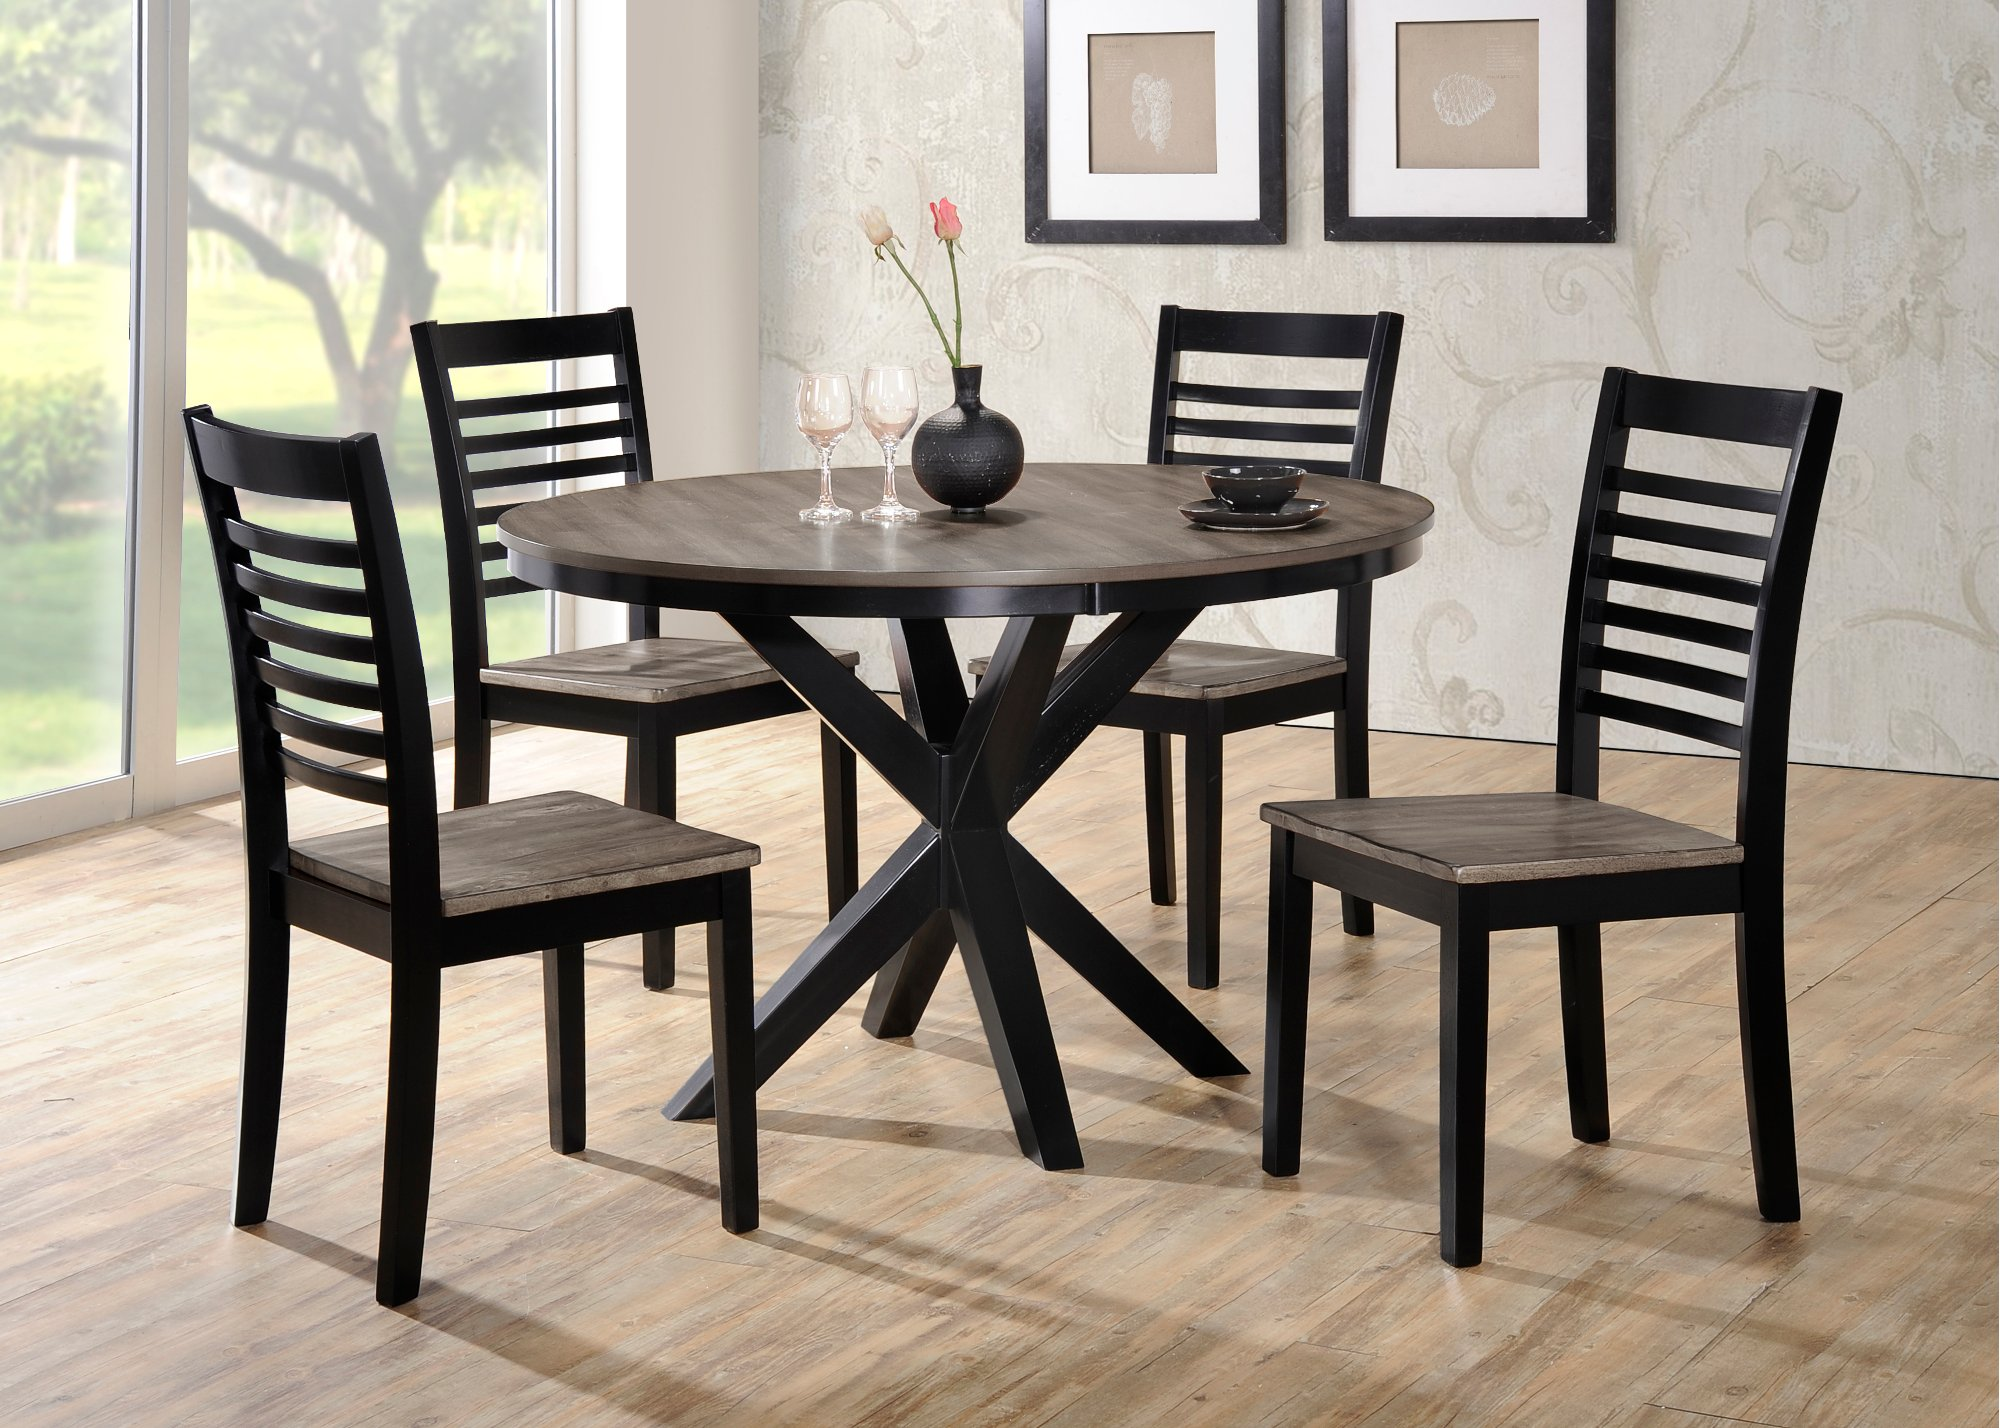 Ebony and Gray Contemporary 5-Piece Round Dining Set ...